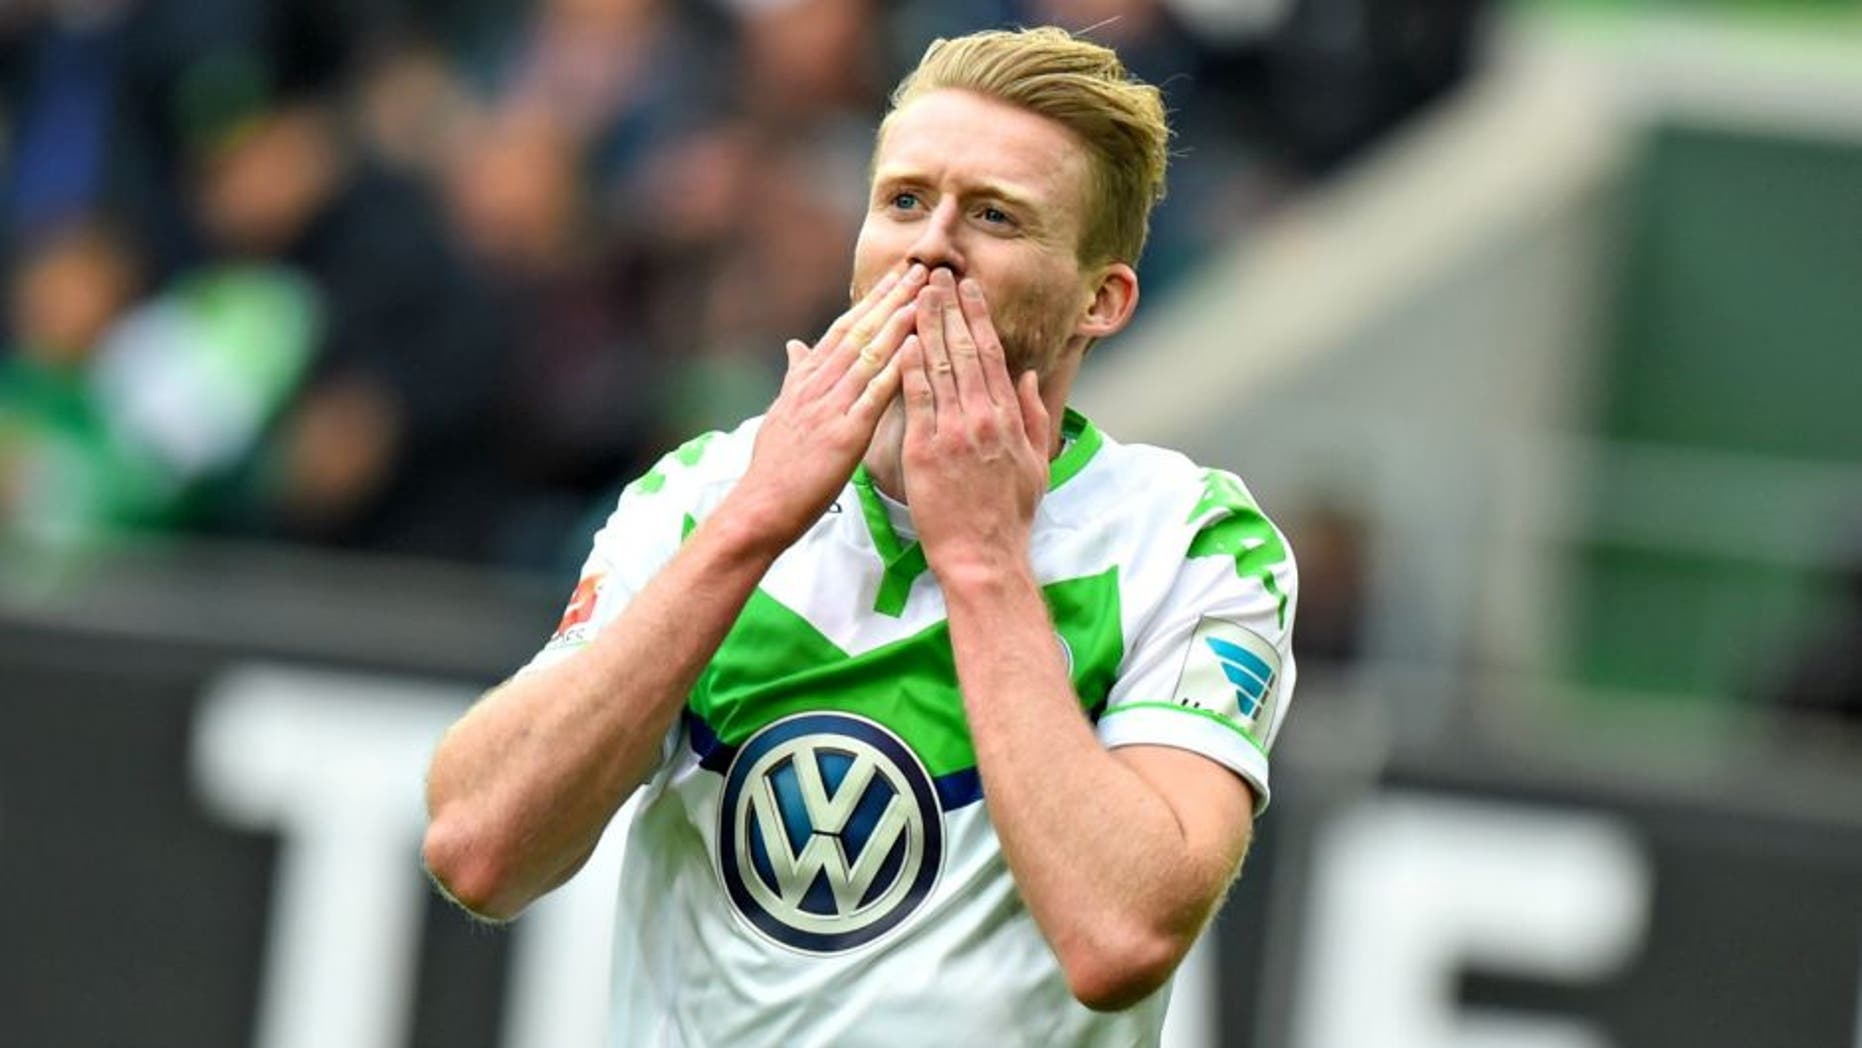 WOLFSBURG, GERMANY - MAY 14: Andre Schuerrle of Wolfsburg celebrates scoring his second goal during during the Bundesliga match between VfL Wolfsburg and VfB Stuttgart at Volkswagen Arena on May 14, 2016 in Wolfsburg, Germany. (Photo by Nigel Treblin/Bongarts/Getty Images)